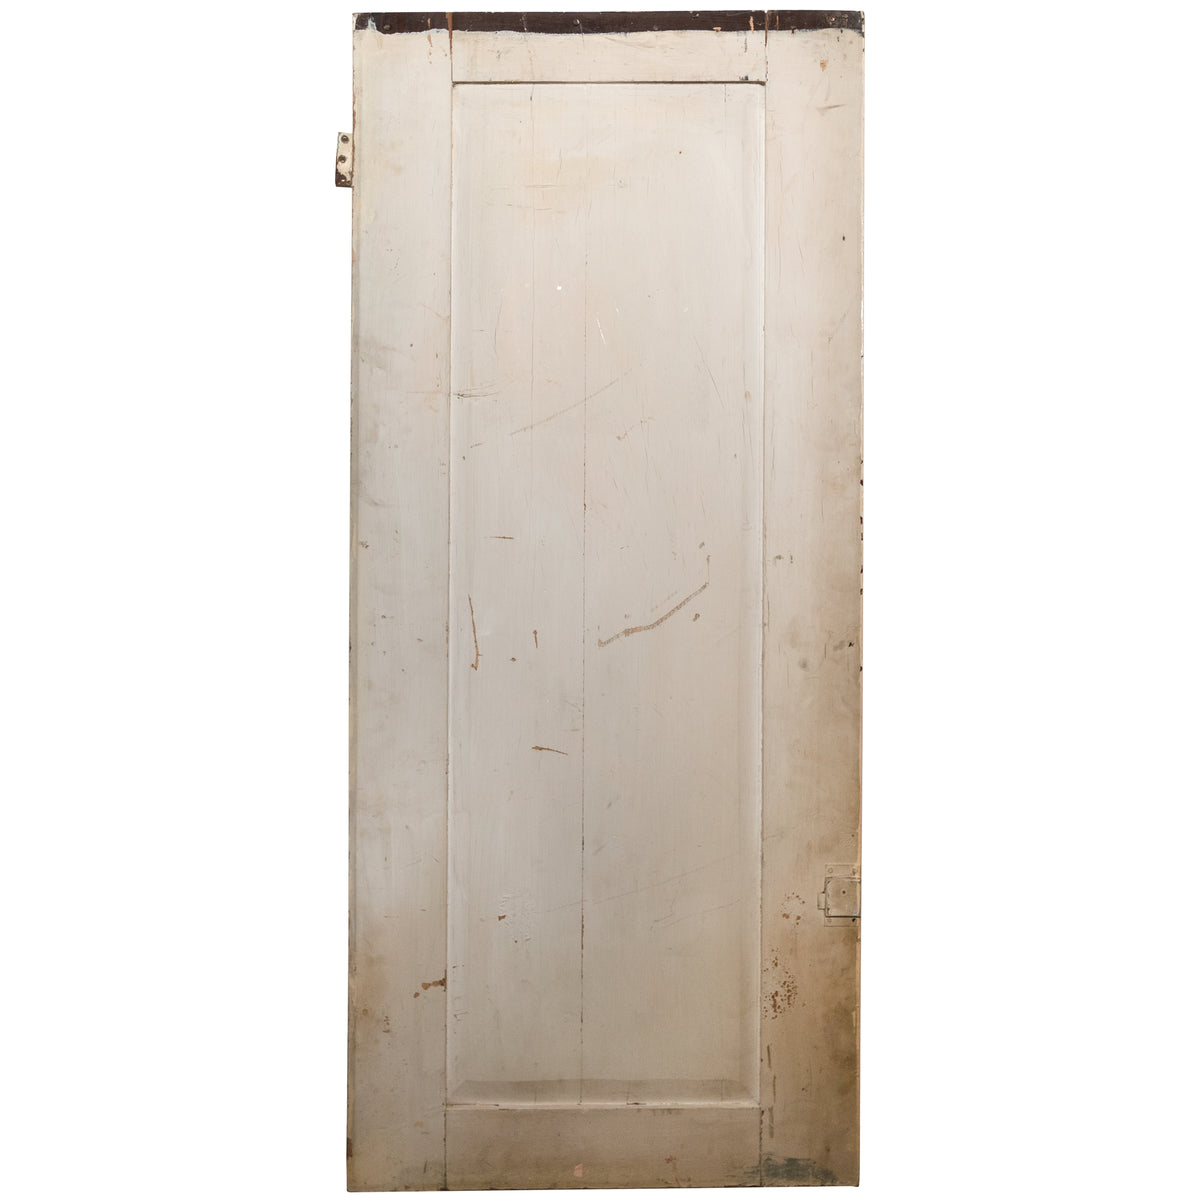 Antique Victorian Pine Cupboard Door - 143cm x 61cm | The Architectural Forum